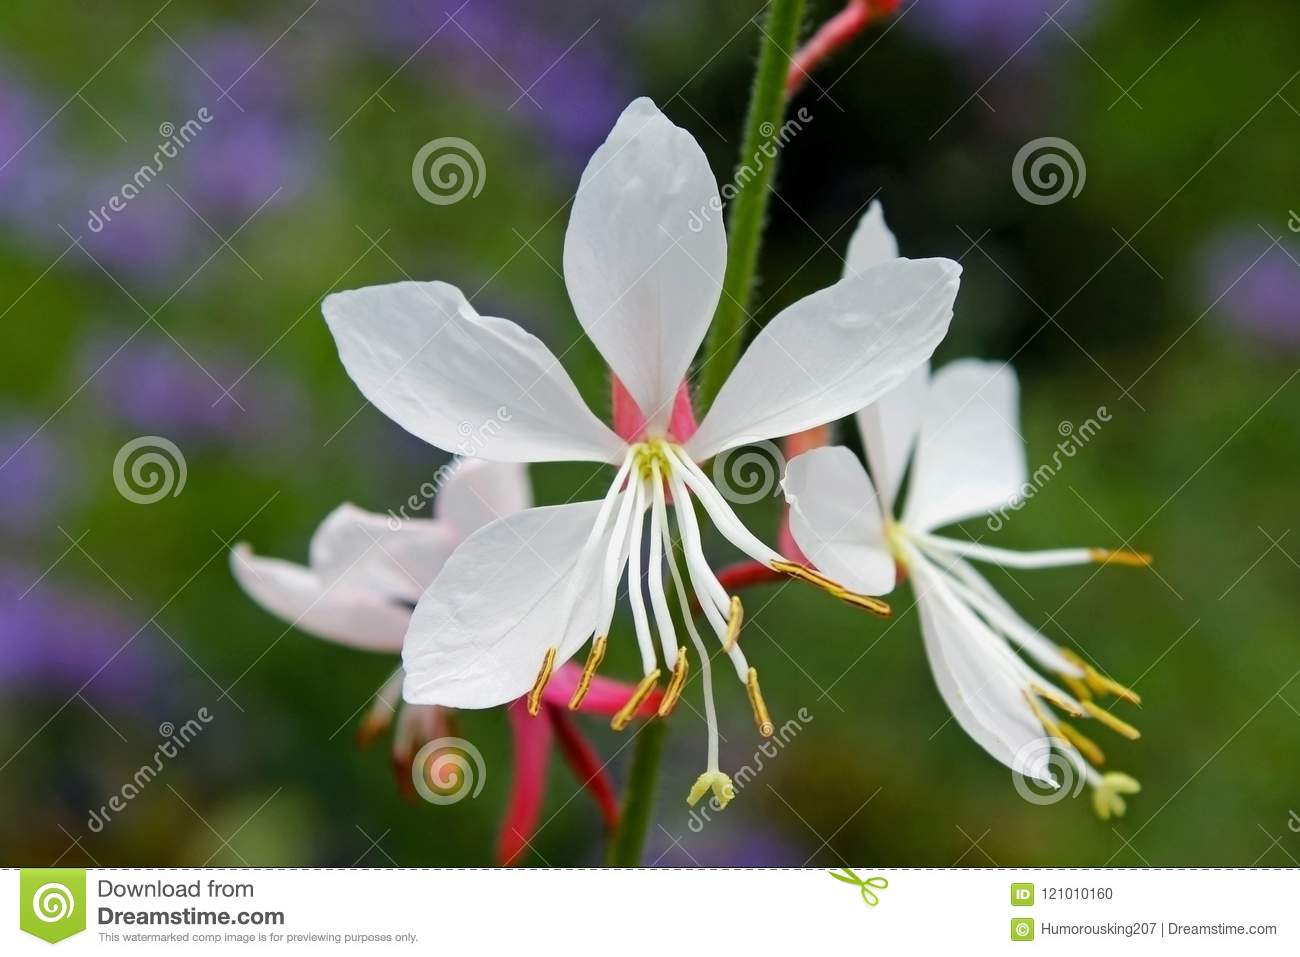 Flowers Of White Gaura Whirling Butterflies Stock Photo Image Of